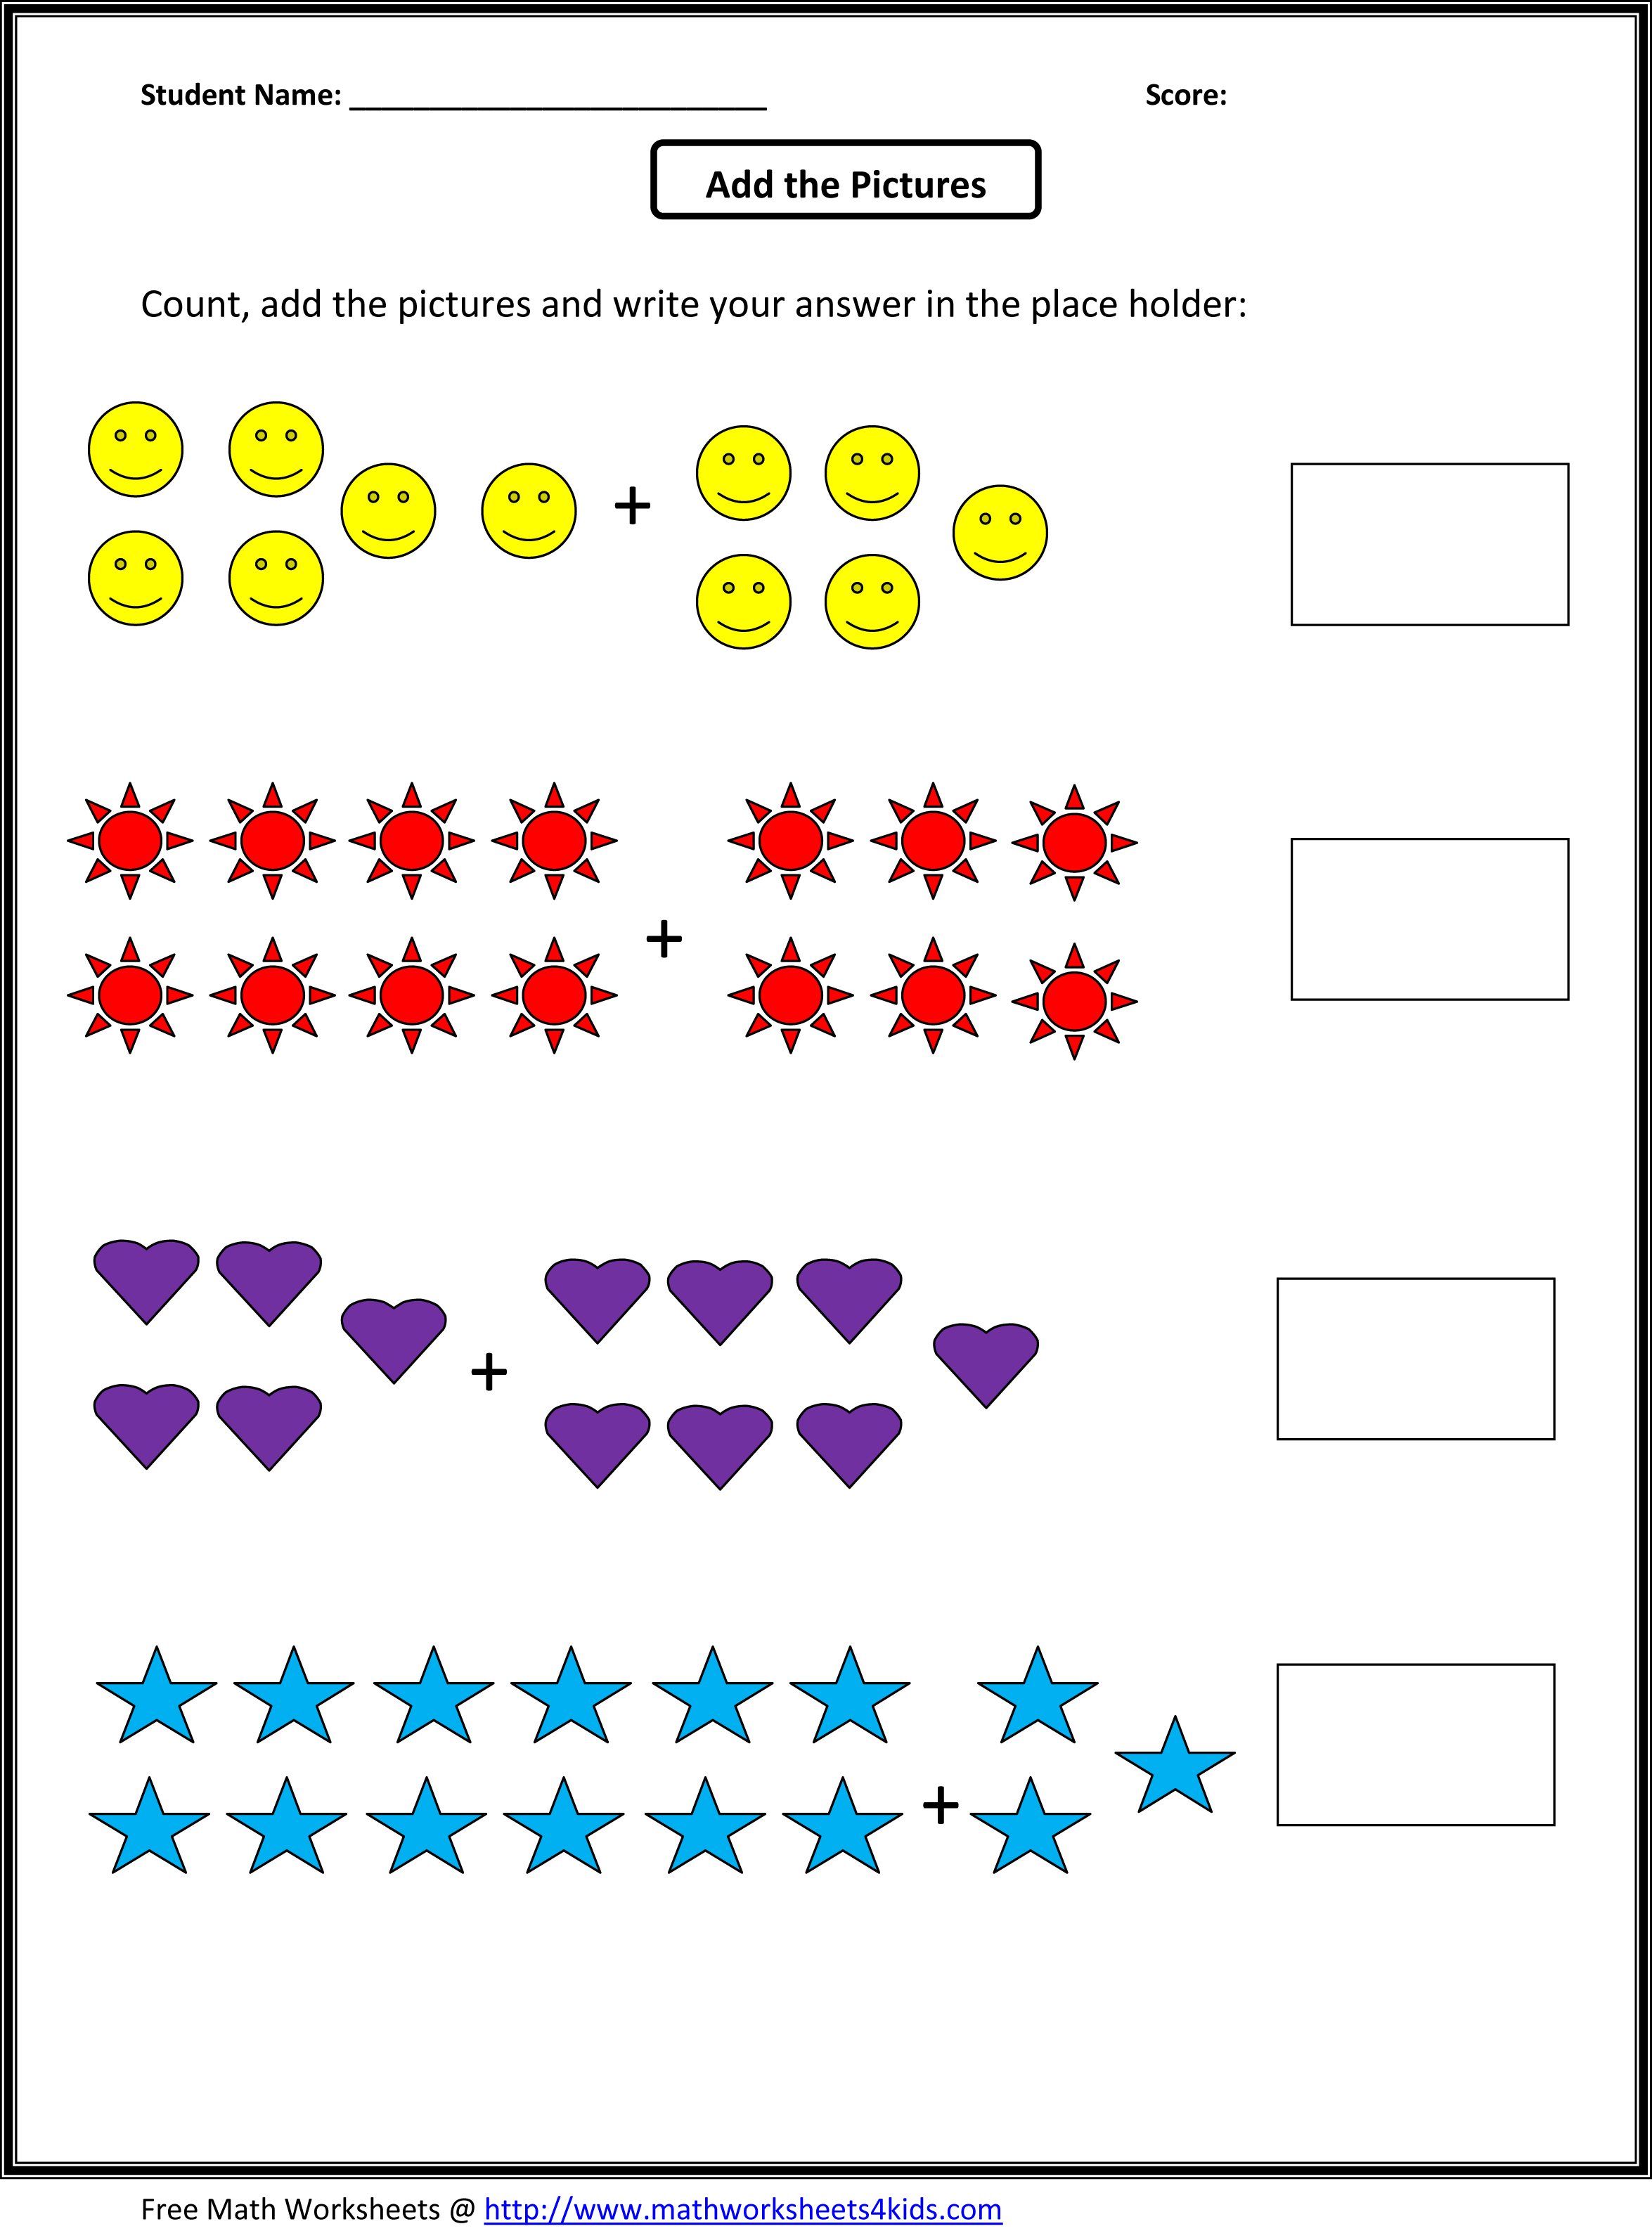 Weirdmailus  Unique Grade  Maths Worksheet  Reocurent With Entrancing Math Worksheets For St Grade Free  Reocurent With Lovely Ncert Worksheets Also Worksheet On Prepositions For Grade  In Addition Matter Worksheets For Kids And Redox Reactions Worksheets As Well As Free Reading Worksheets Nd Grade Additionally Maths Worksheets Addition From Reocurentcom With Weirdmailus  Entrancing Grade  Maths Worksheet  Reocurent With Lovely Math Worksheets For St Grade Free  Reocurent And Unique Ncert Worksheets Also Worksheet On Prepositions For Grade  In Addition Matter Worksheets For Kids From Reocurentcom